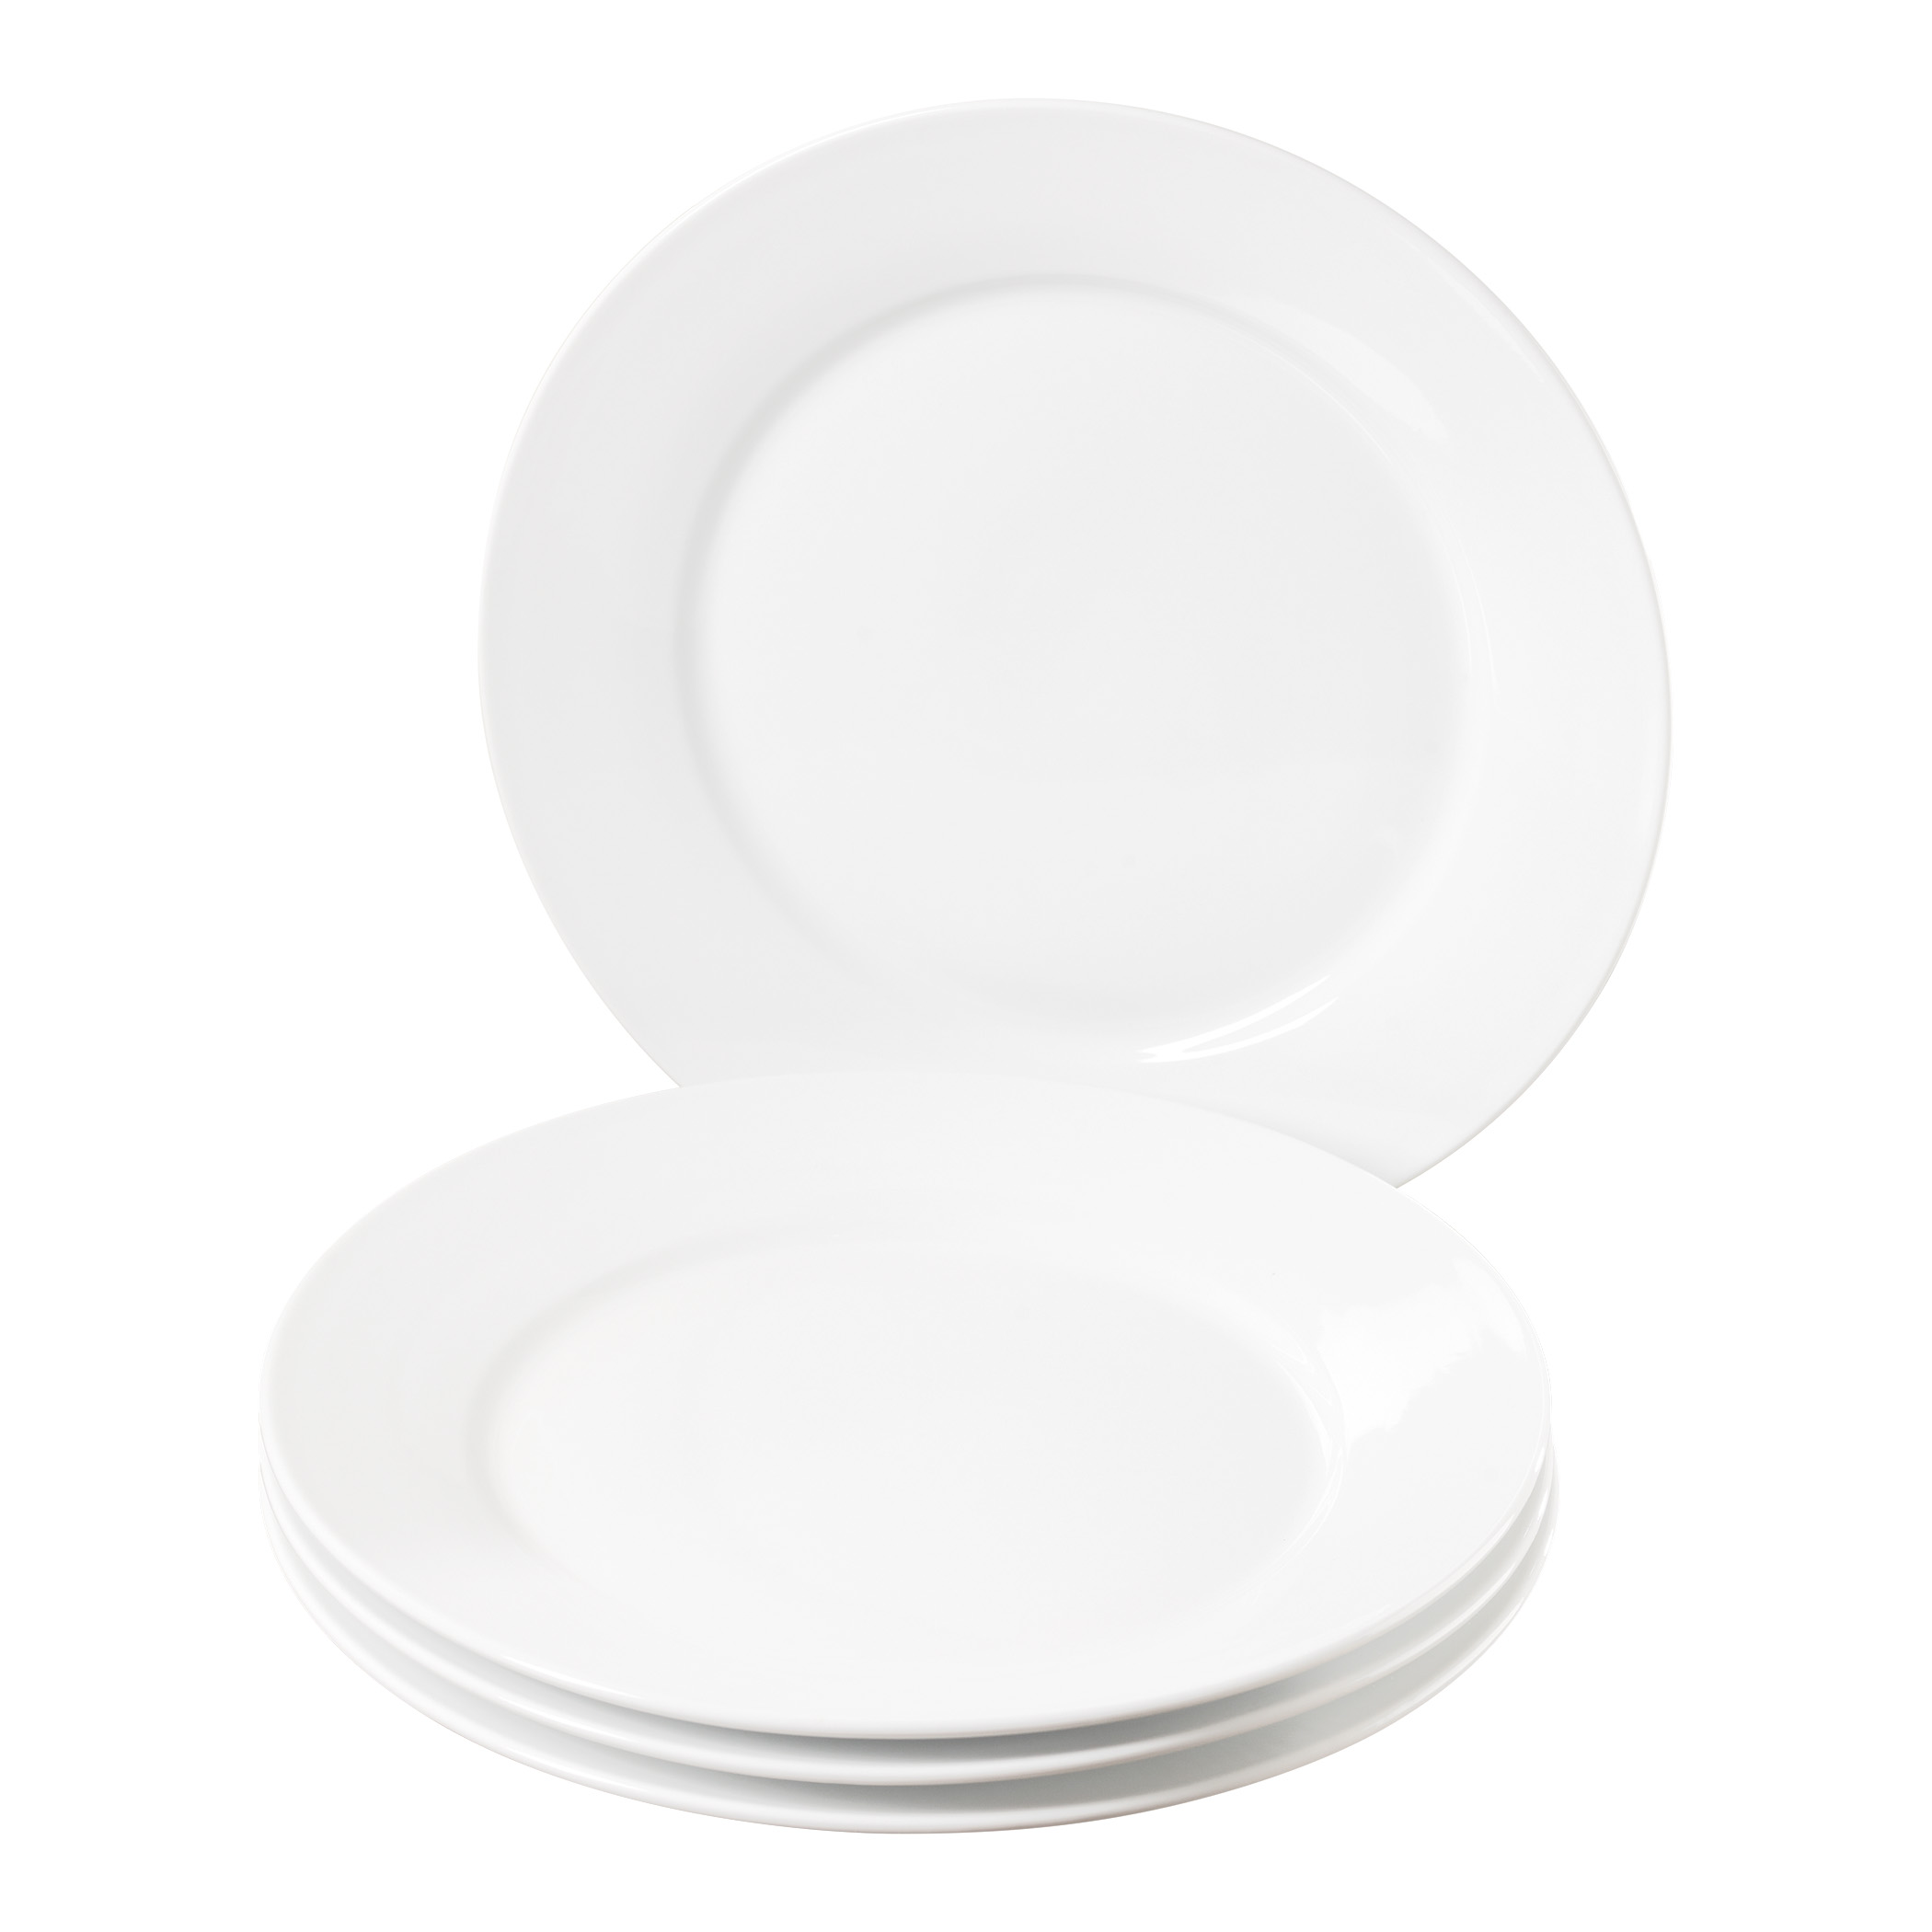 TTU-Q1201-EC-Set of Four 11 inch Porcelain Dinner Plates by Denmark  sc 1 st  Tabletops Unlimited & Set of Four 11 Inch Round Porcelain Dinner Plates by Denmark Tools ...